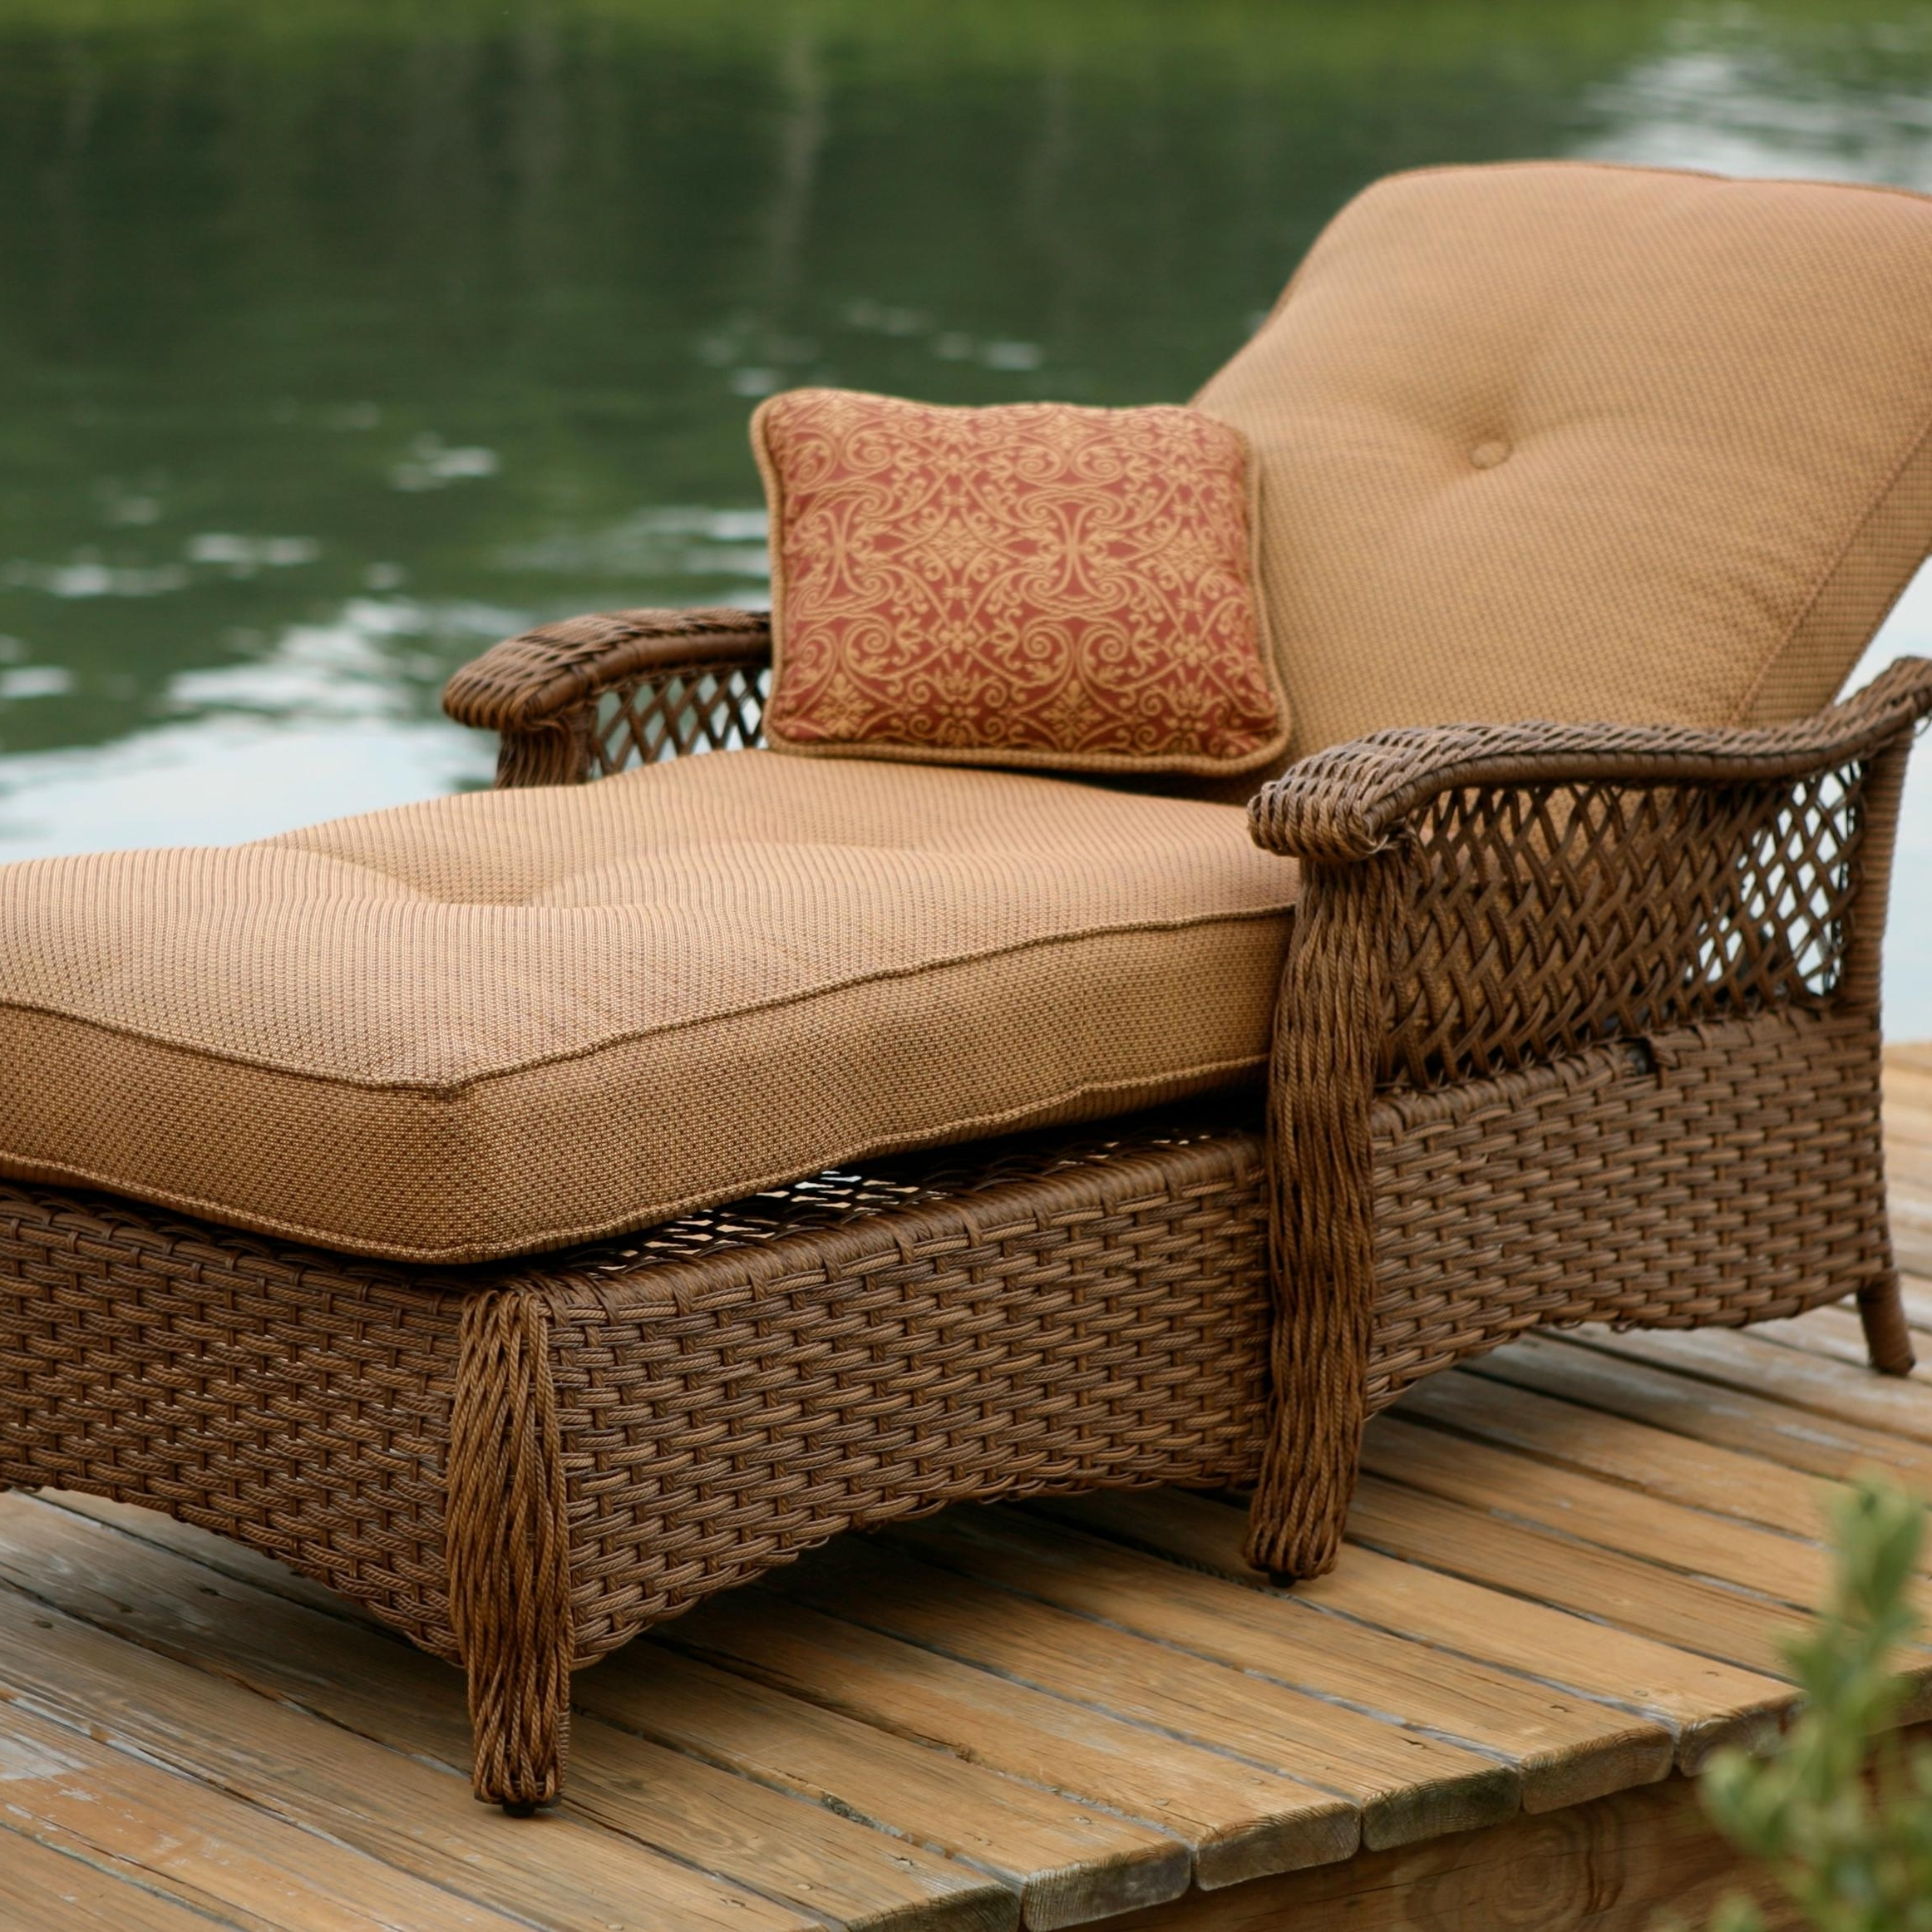 2017 Agio Veranda–Agio Outdoor Tan Woven Chaise Lounge Chair With Seat With Regard To Garden Chaise Lounge Chairs (View 1 of 15)